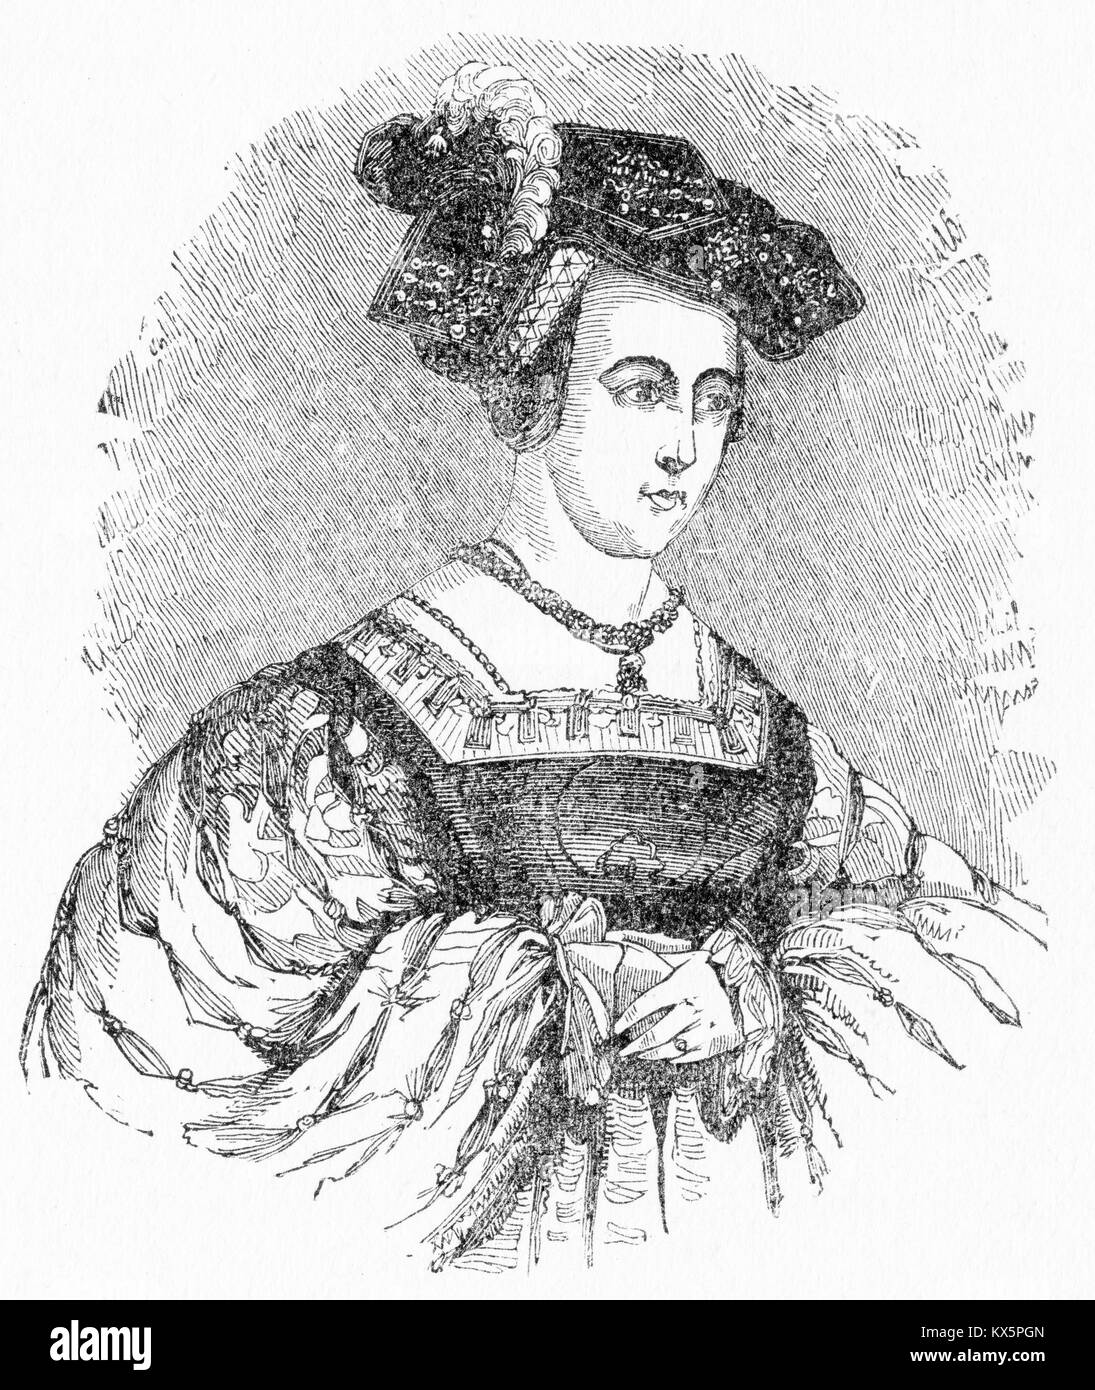 Engraving of Anne Boleyn, second wife to Henry VIII, Tudor King of England. From Elizabeth, by Jacob Abbott, 1846. - Stock Image